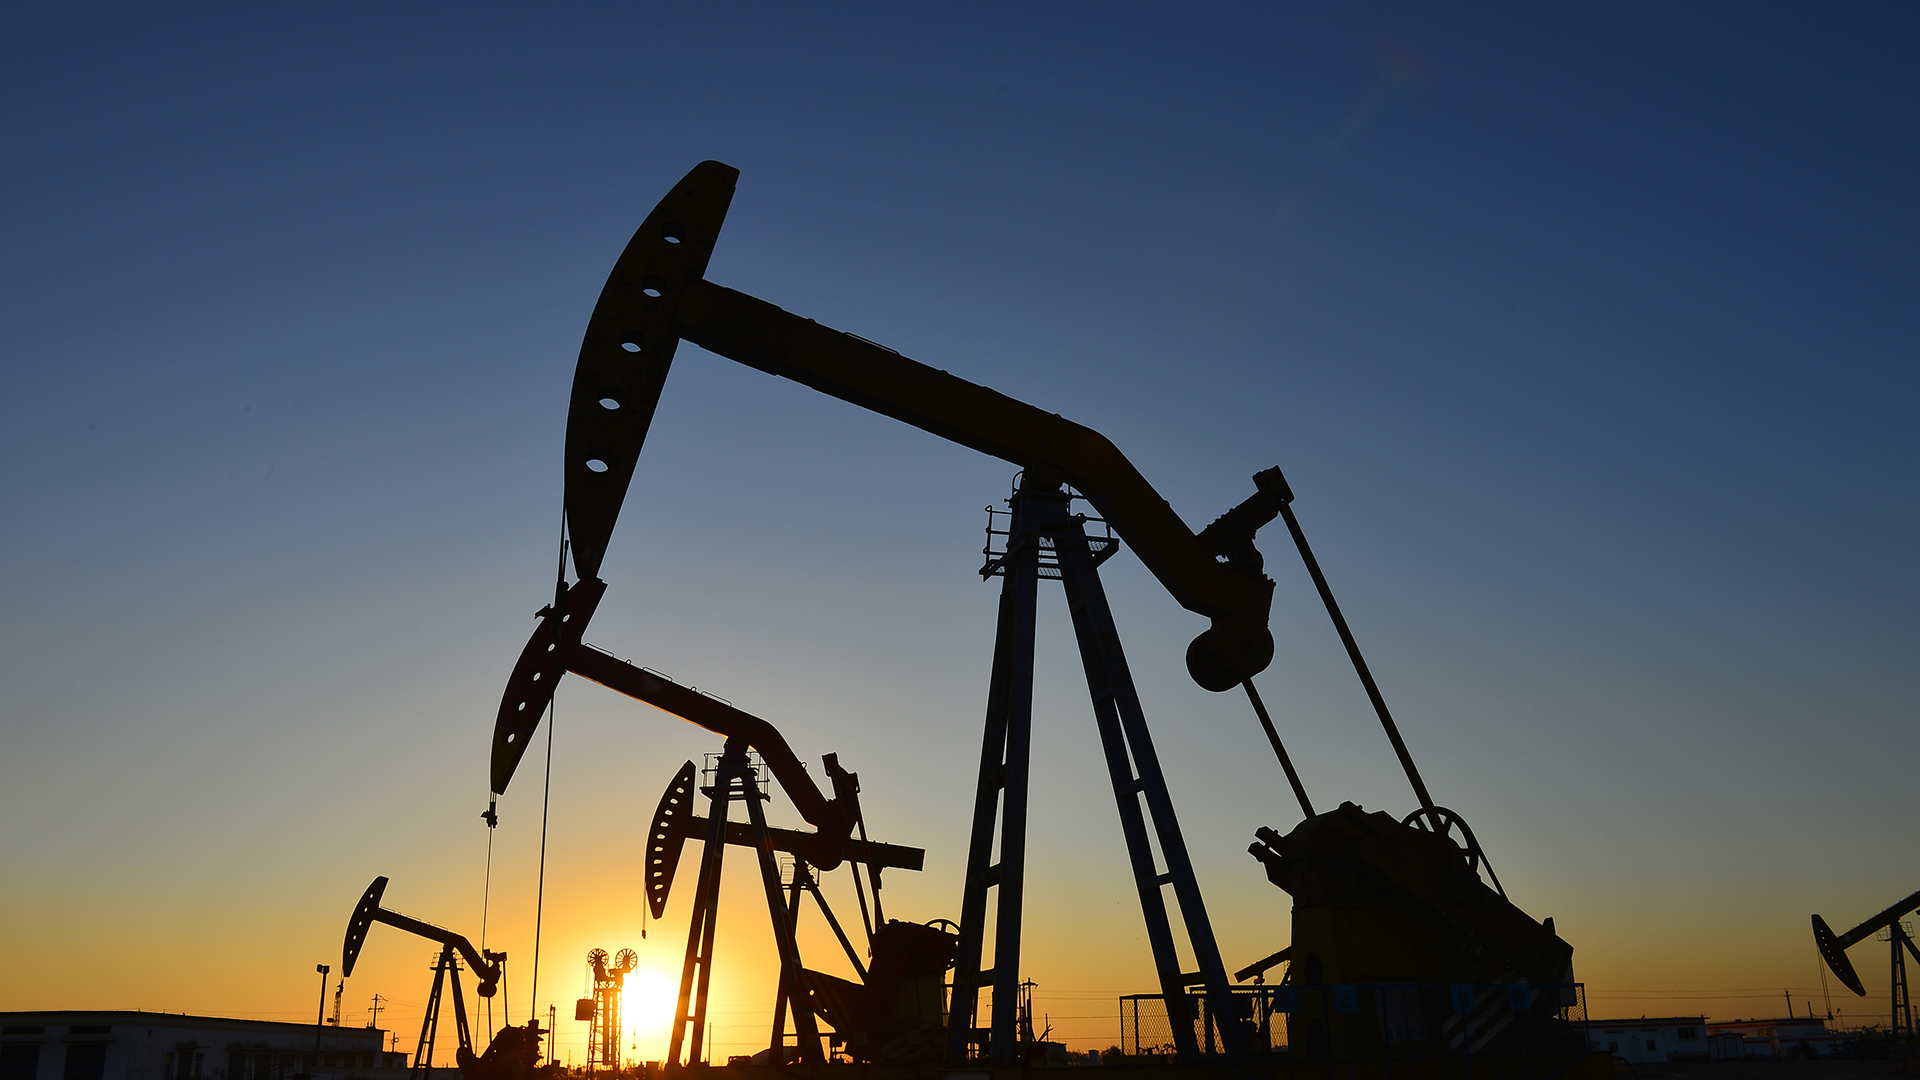 A line of three oil drills at sunset.